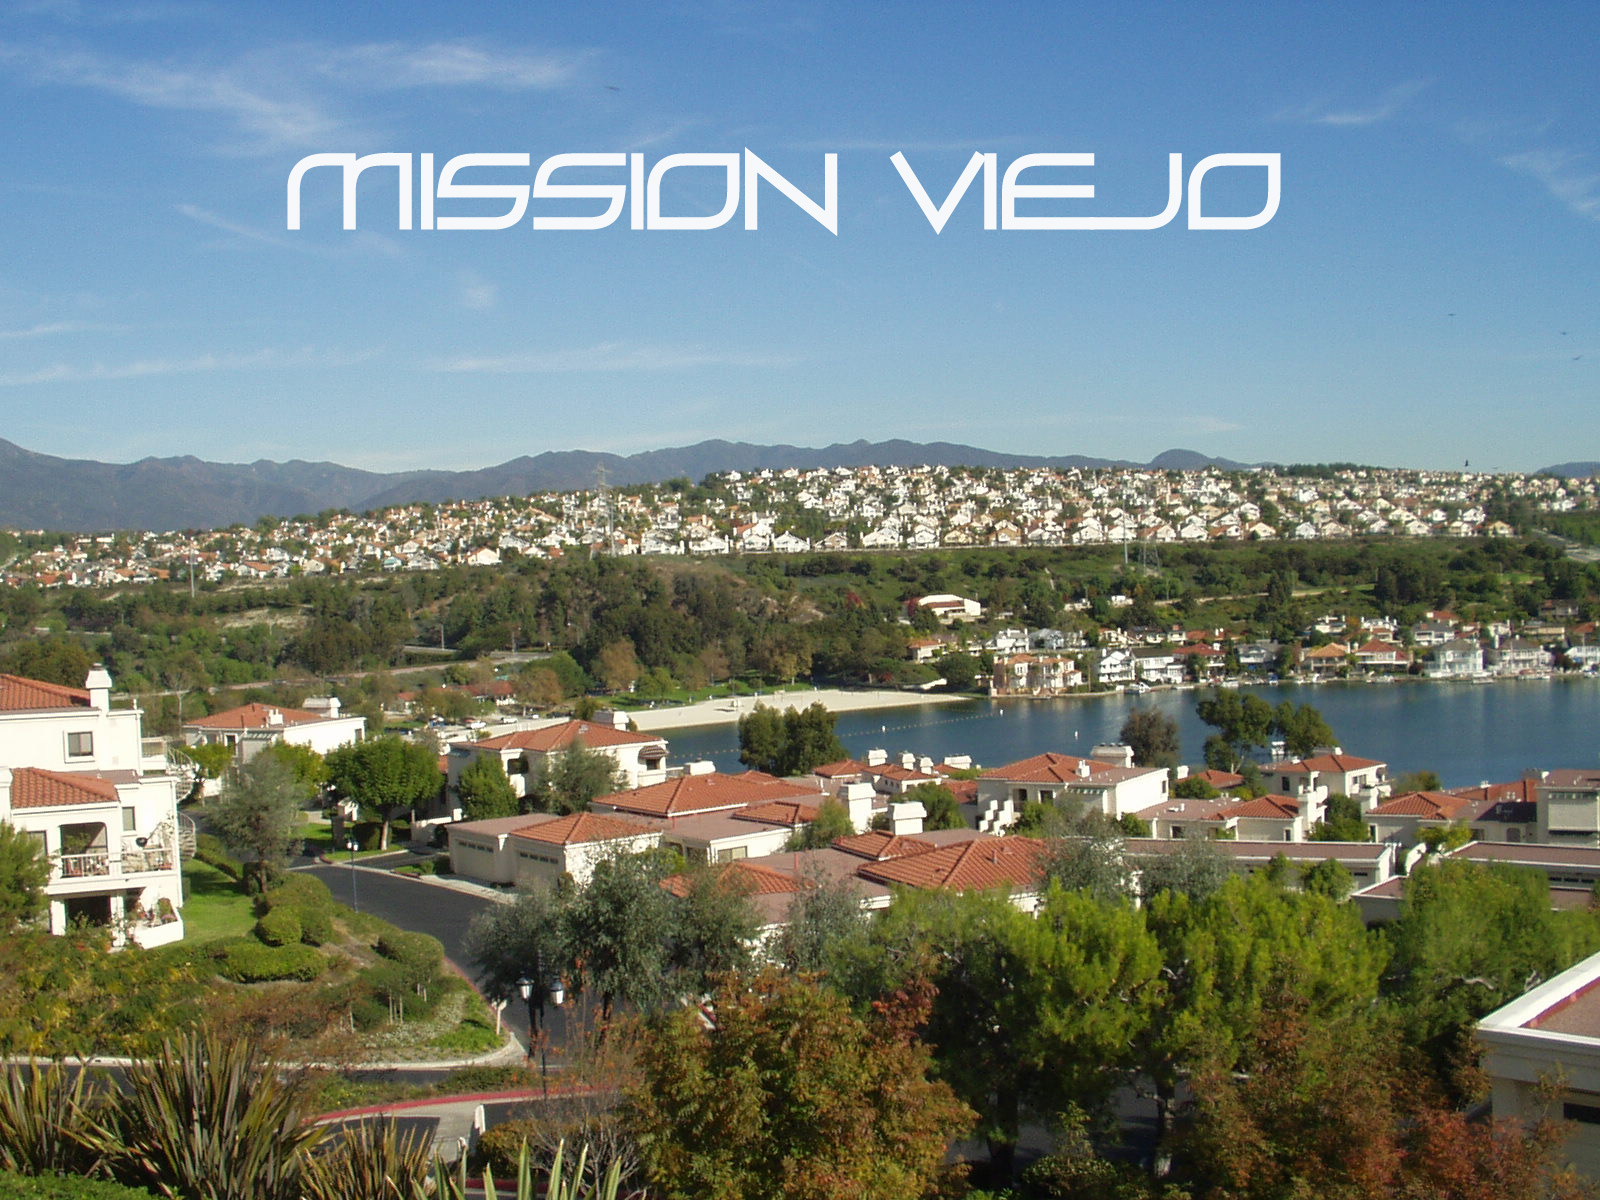 Catholic singles mission viejo